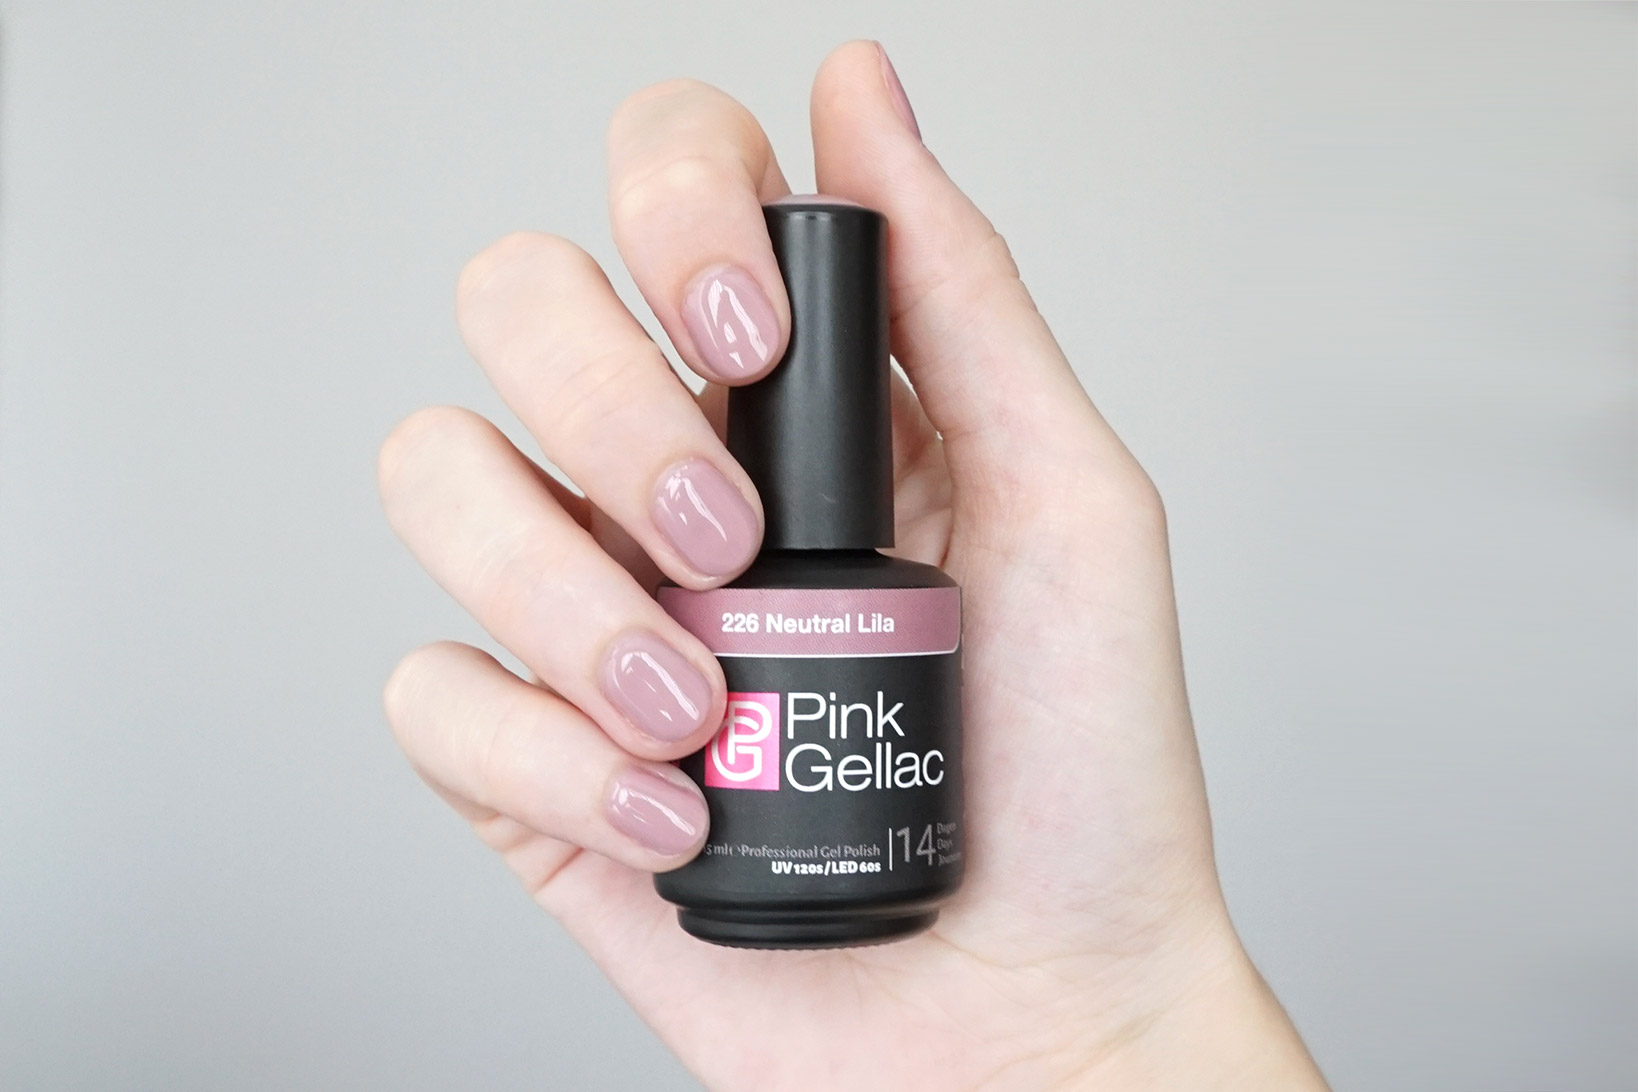 Pink-Gellac-review-226-Neutral-Lila-2